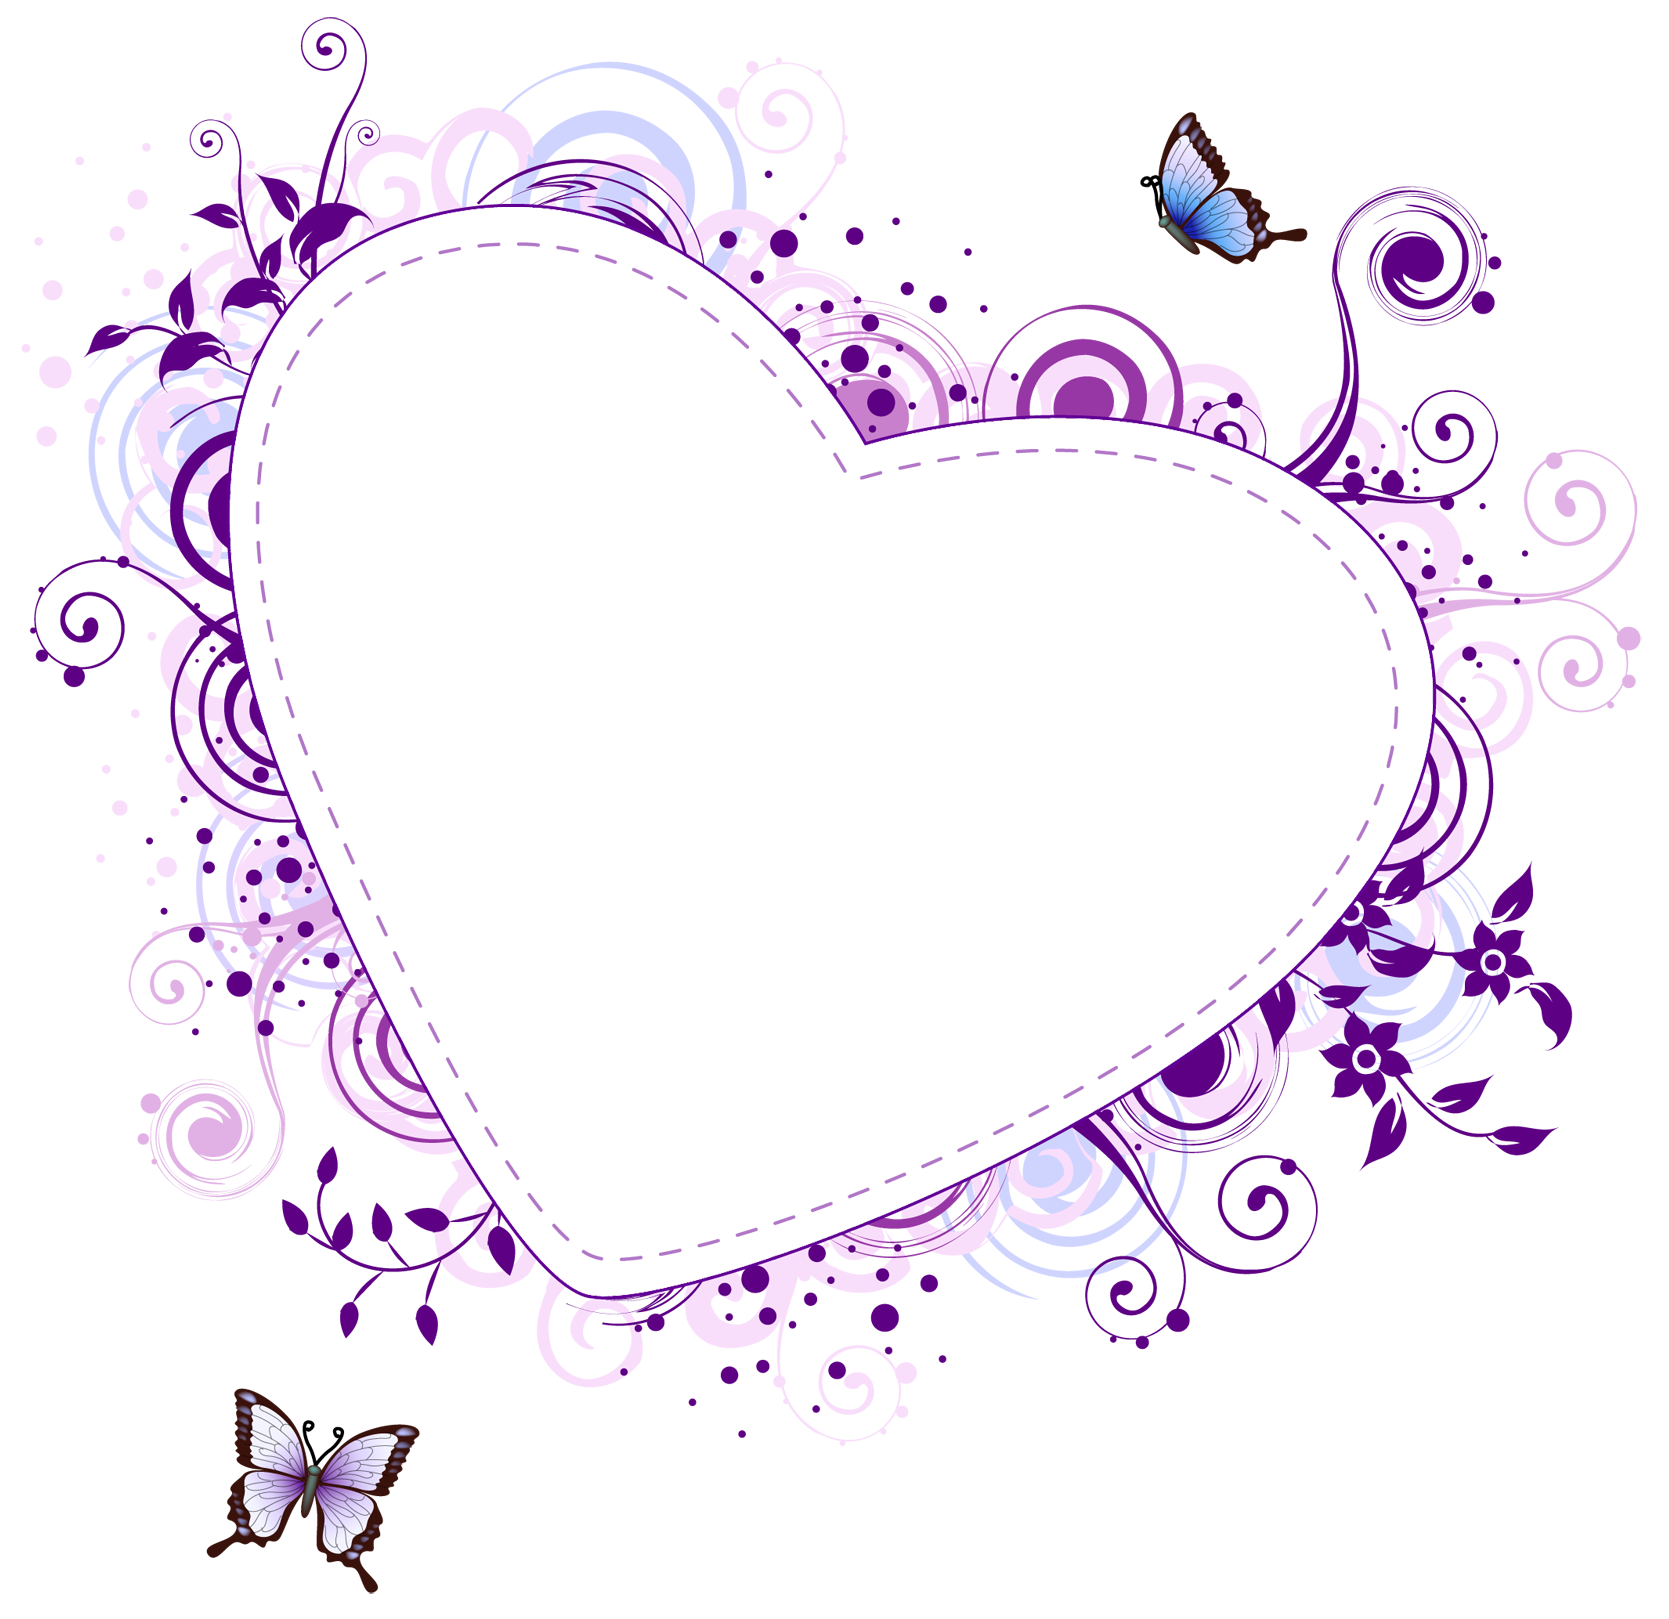 Photo frame clipart with hearts clip art royalty free 17 Best images about Borders/Frames on Pinterest | Photo ... clip art royalty free